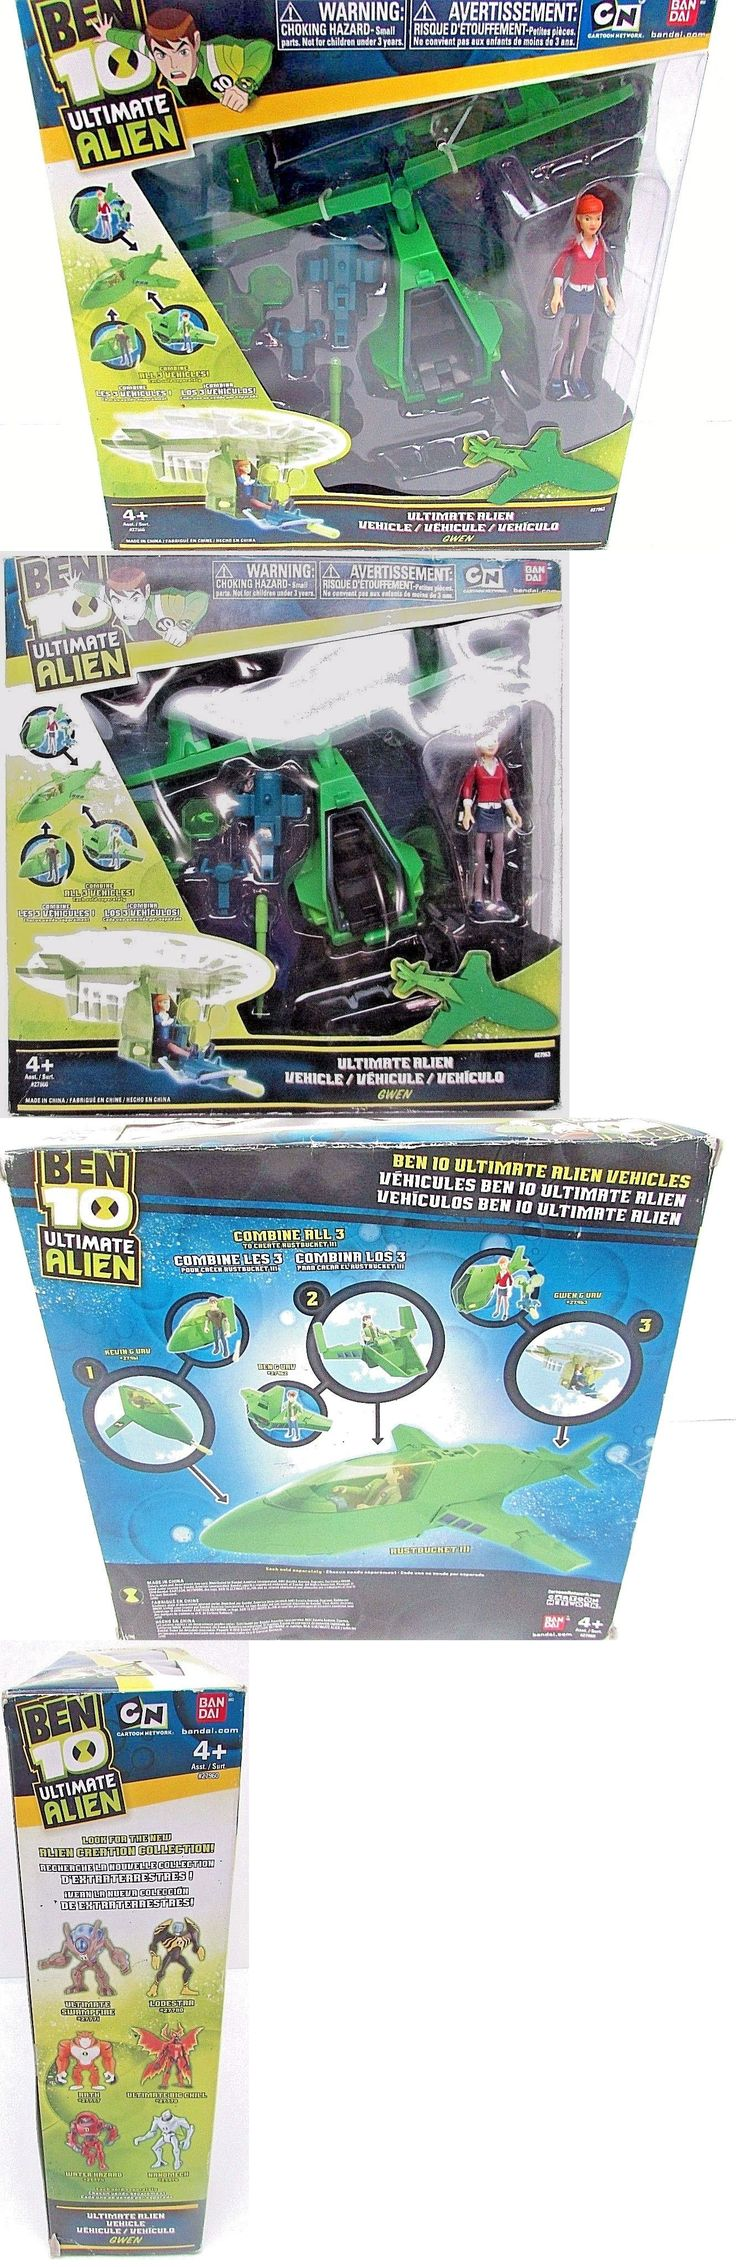 Ben 10 152906: Ben 10 Ultimate Alien Vehicle With Gwen 27960 Bandai New -> BUY IT NOW ONLY: $48.89 on eBay!